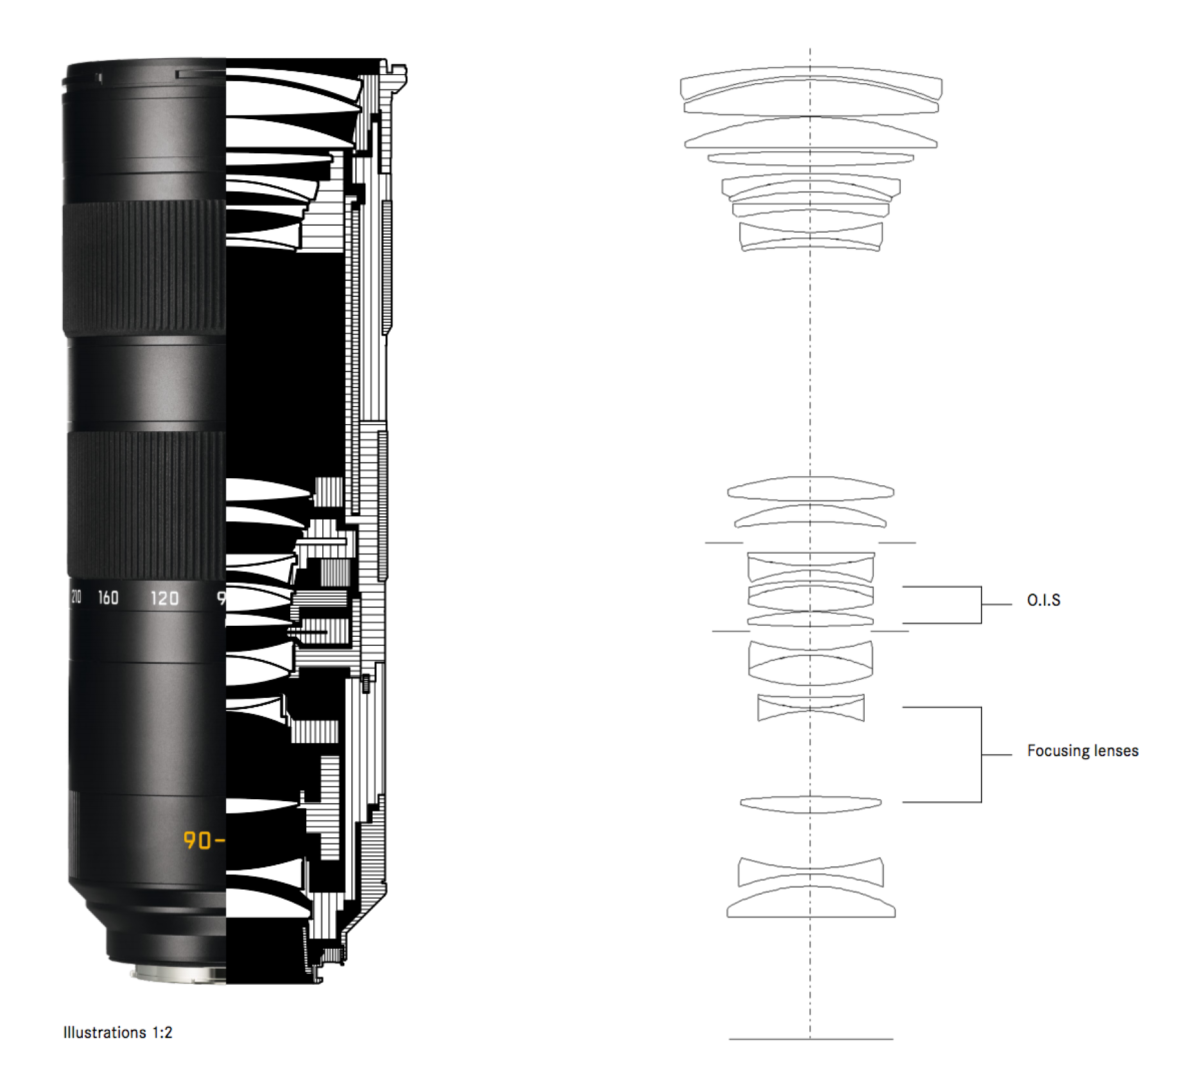 Leica Apo Vario Elmarit Sl 90 280mm F 28 4 Lens Review Telephoto Schematics And Sketches Intelligent Fencing Systems Screen Shot 2016 04 05 At 12047 Pm